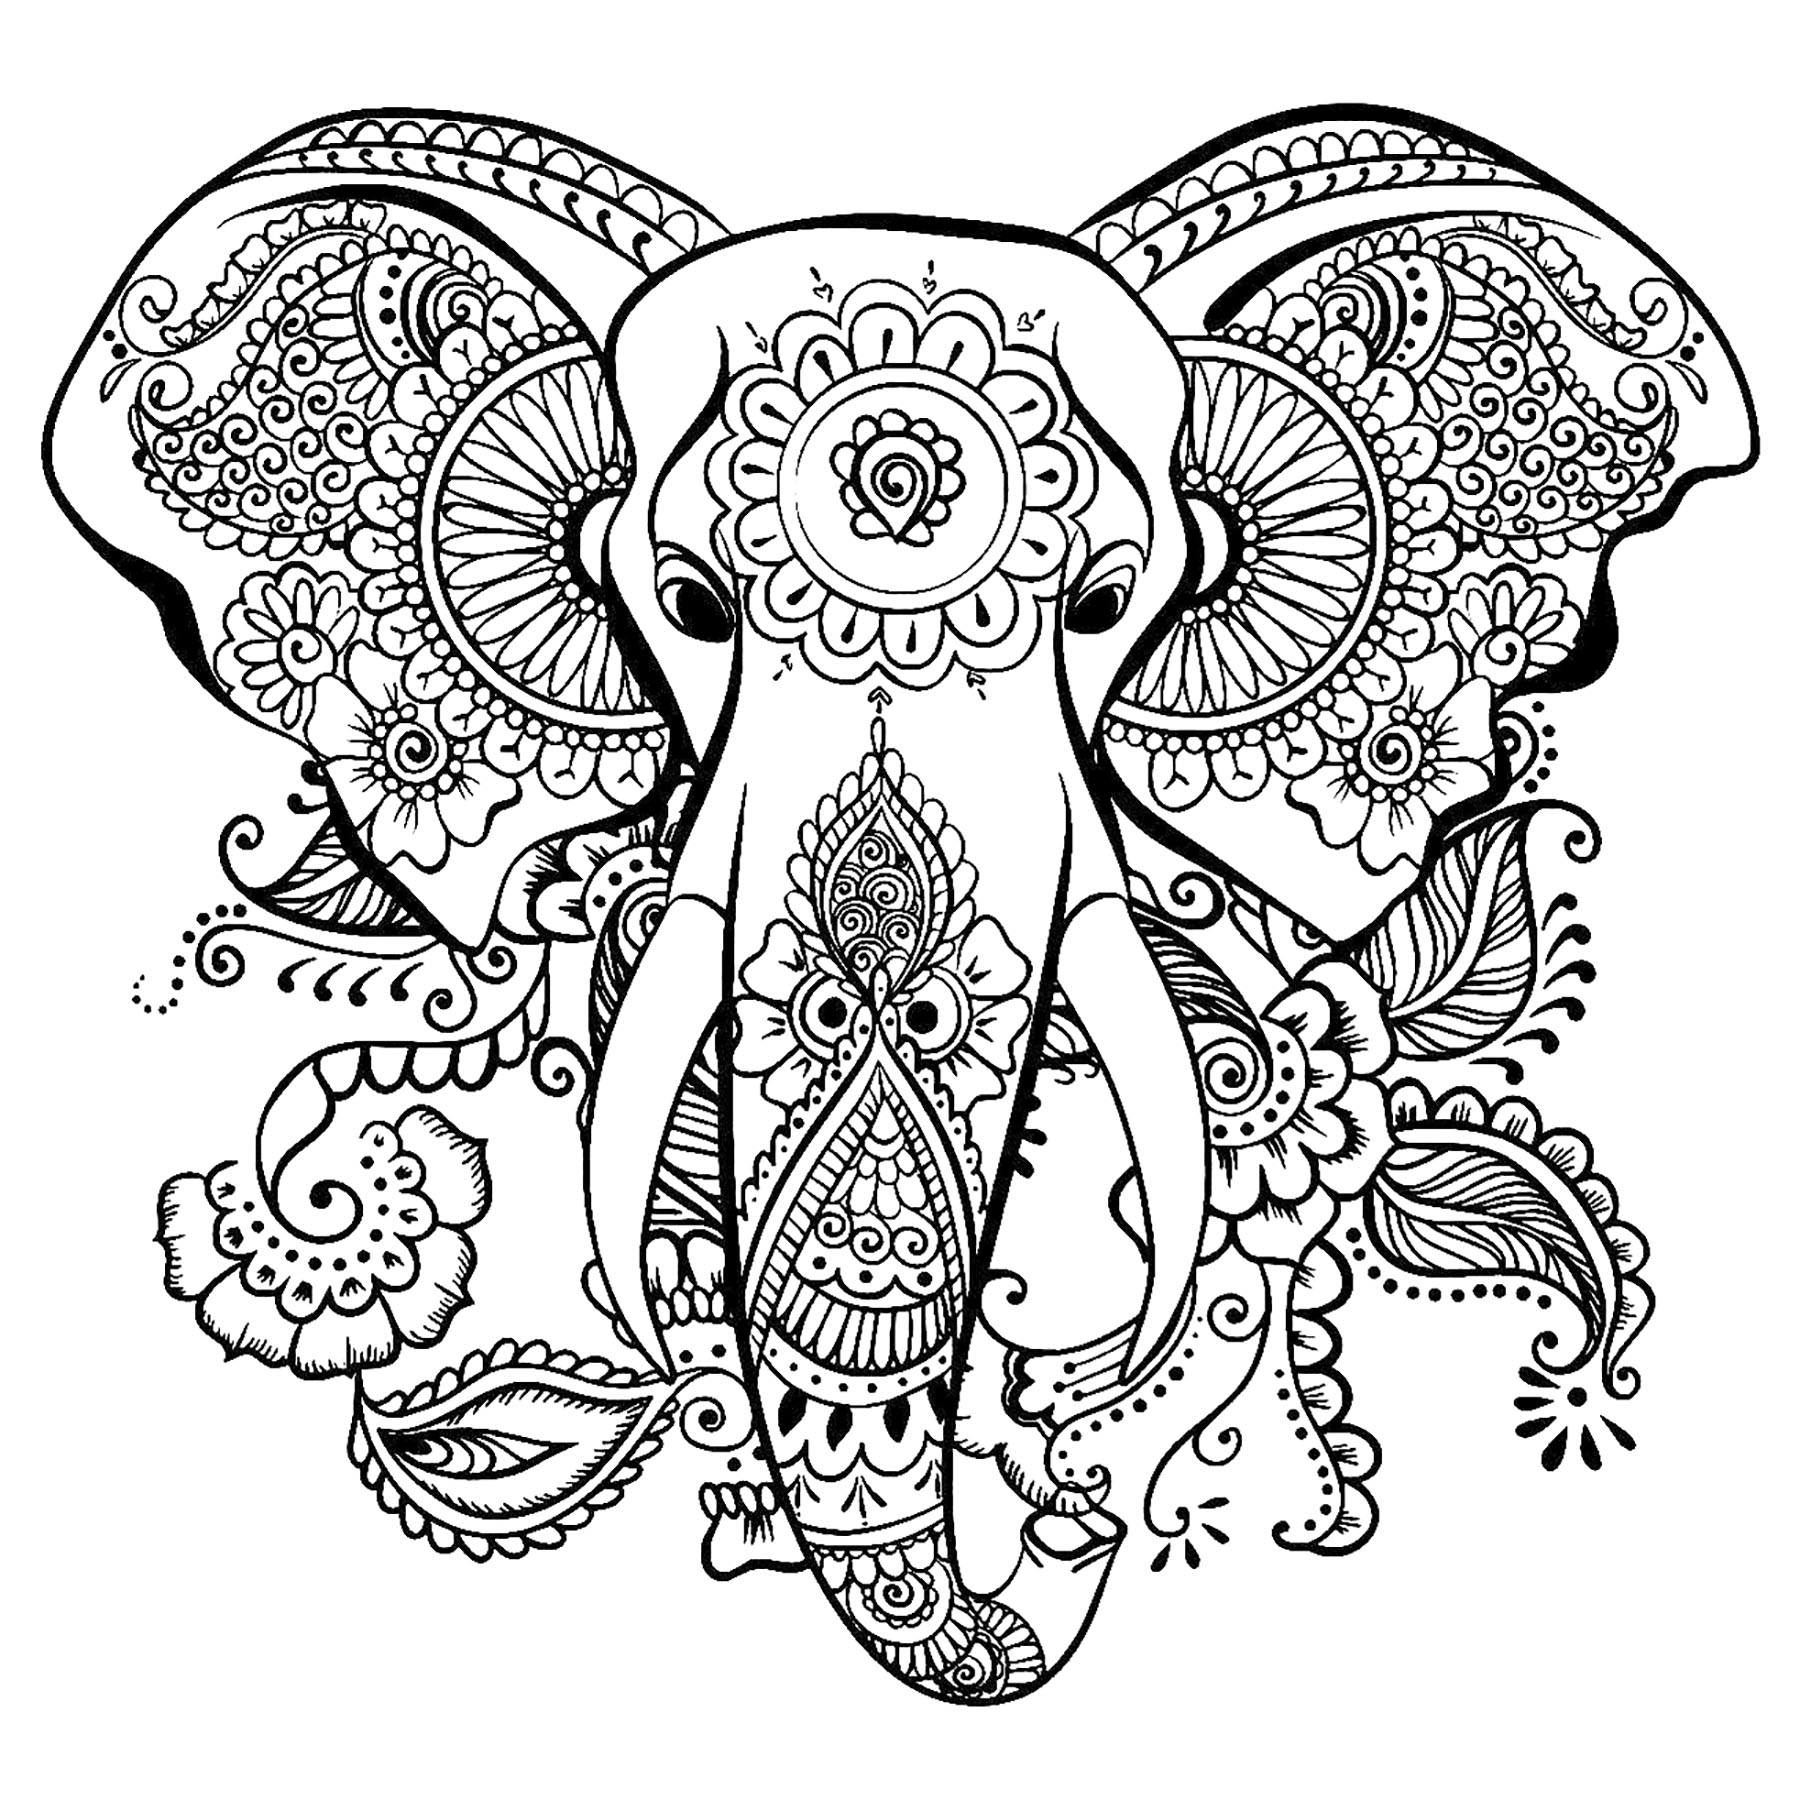 coloring pages elephants elephant coloring book pages get coloring pages coloring pages elephants